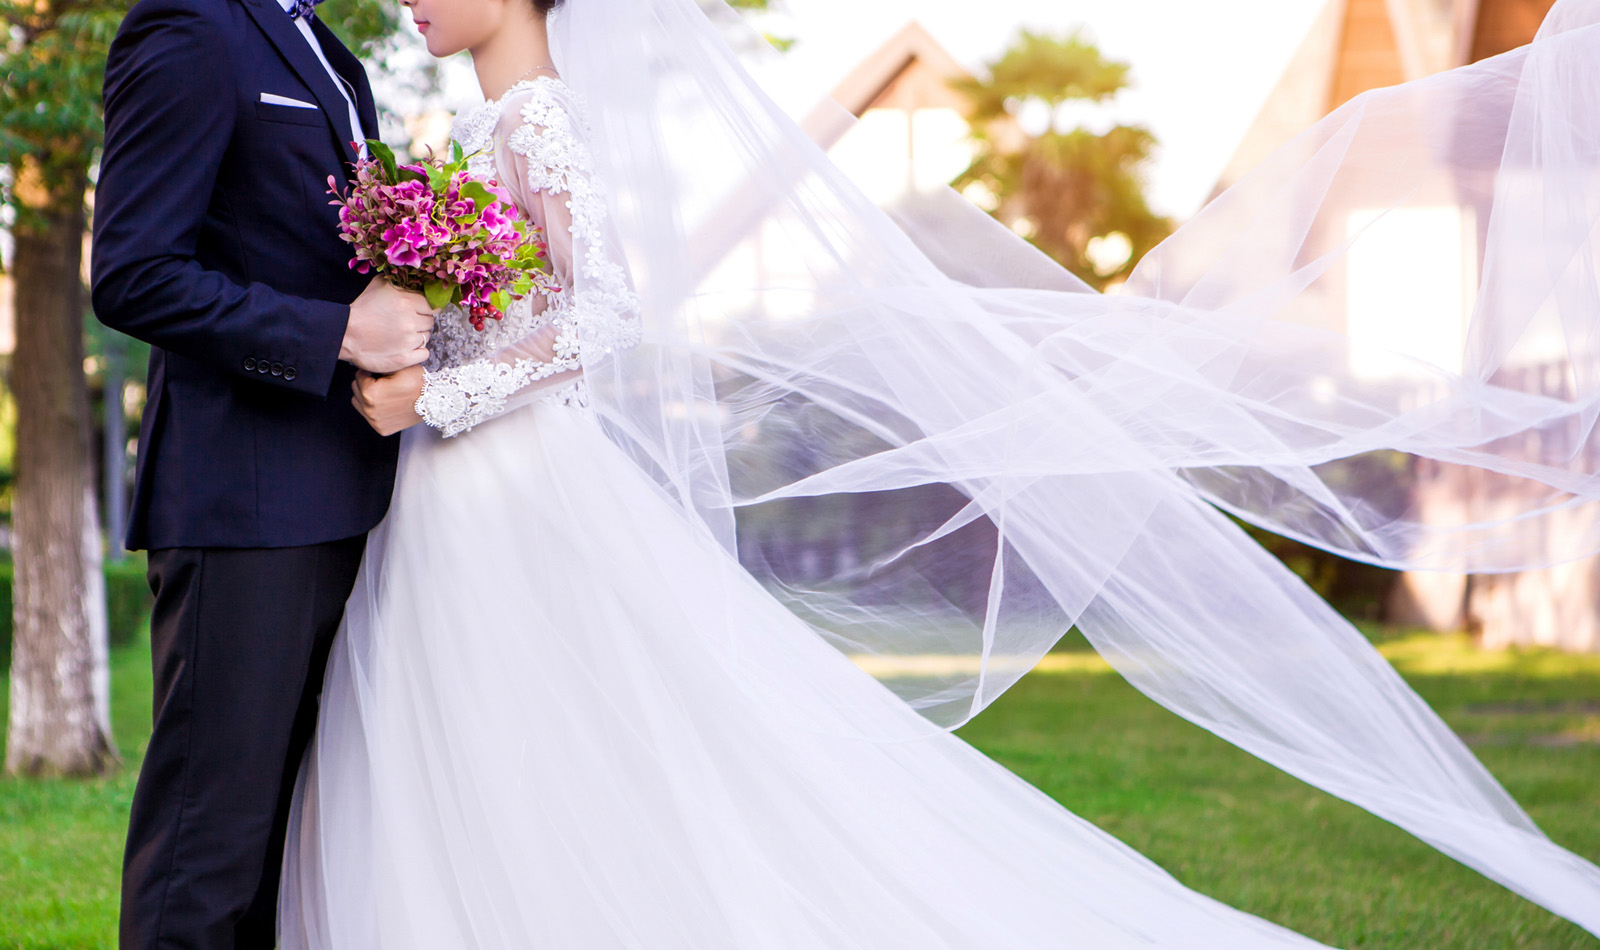 Side view of wedding couple standing at lawn